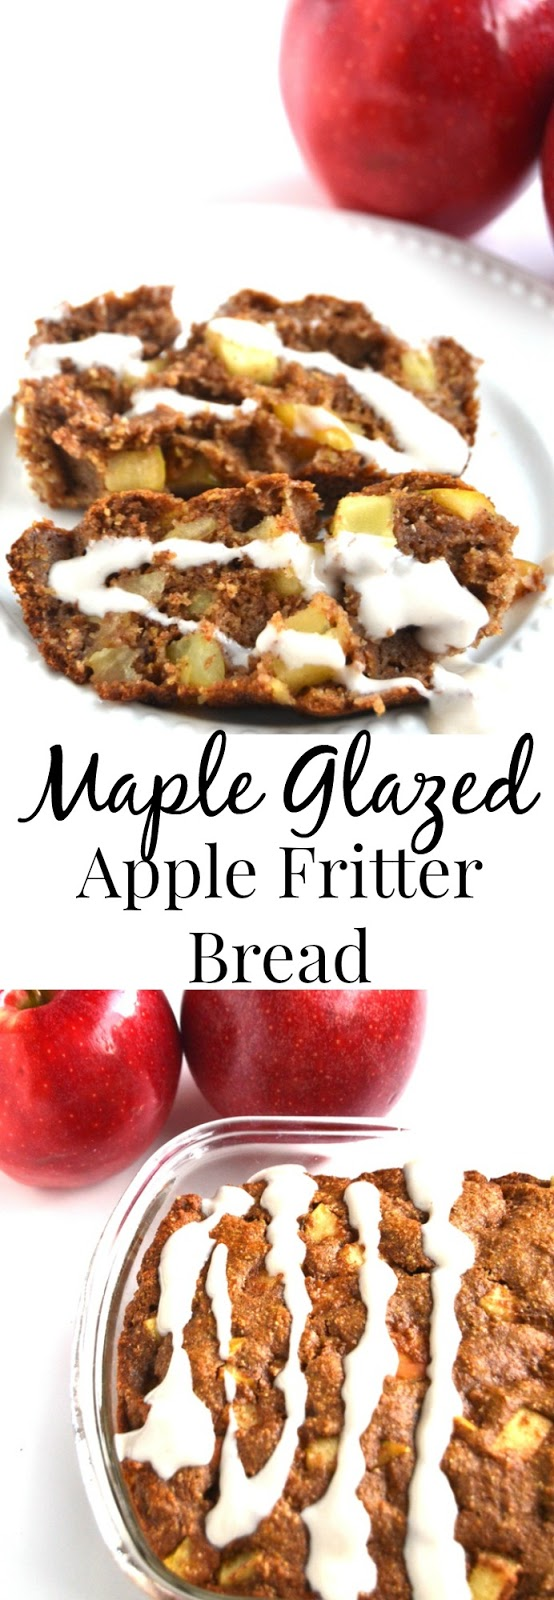 Maple Glazed Apple Fritter Bread tastes like your favorite doughnut but is healthier made with whole-wheat, fresh apples and a protein-rich maple drizzle! www.nutritionistreviews.com